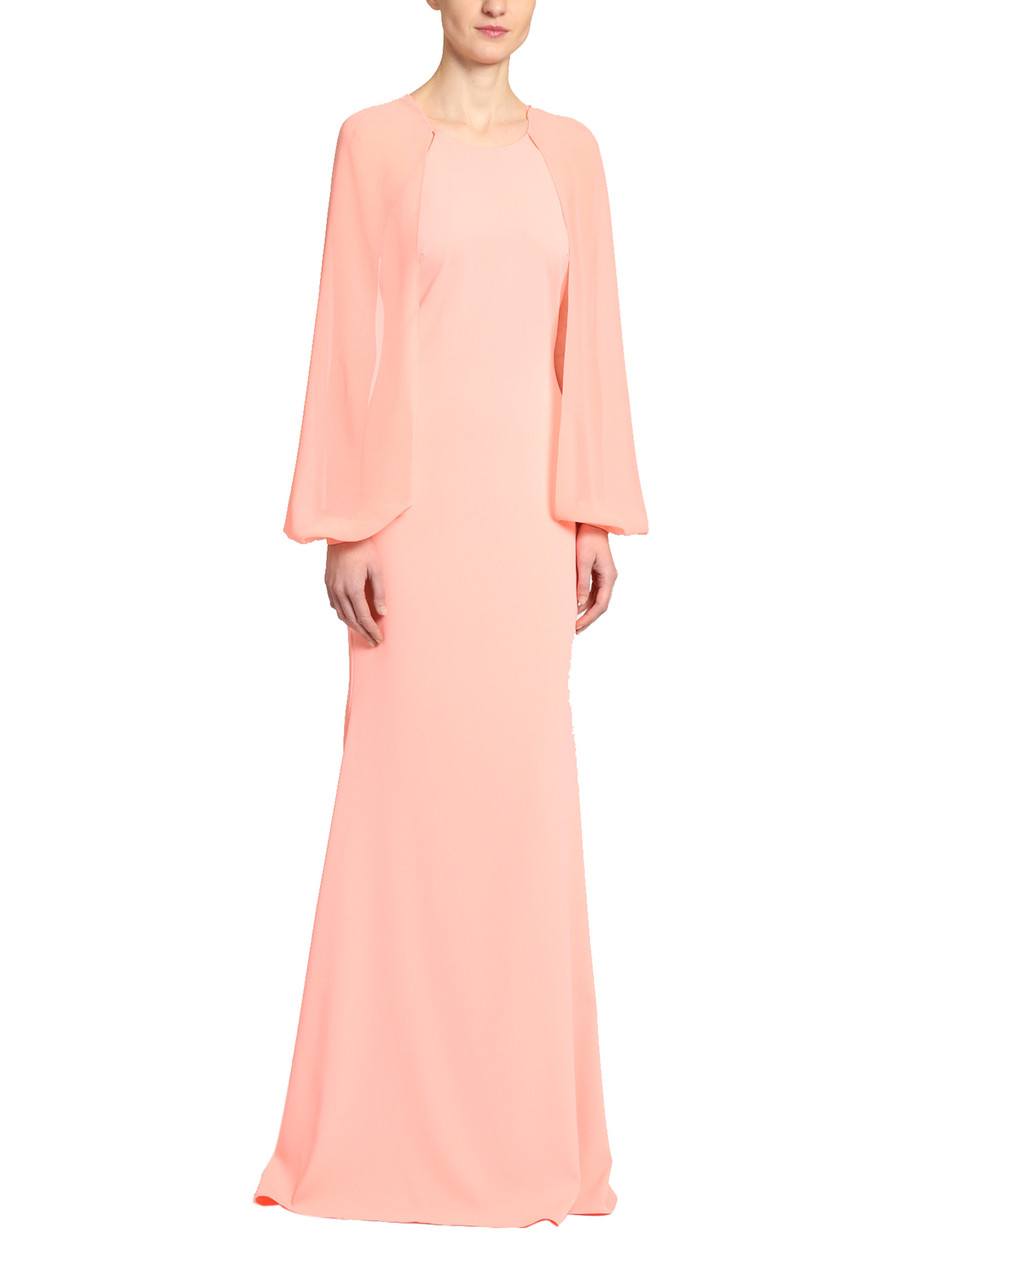 fc3ba0ae847 Georgette Sleeve Gown With Crepe Body by Badgley Mischka